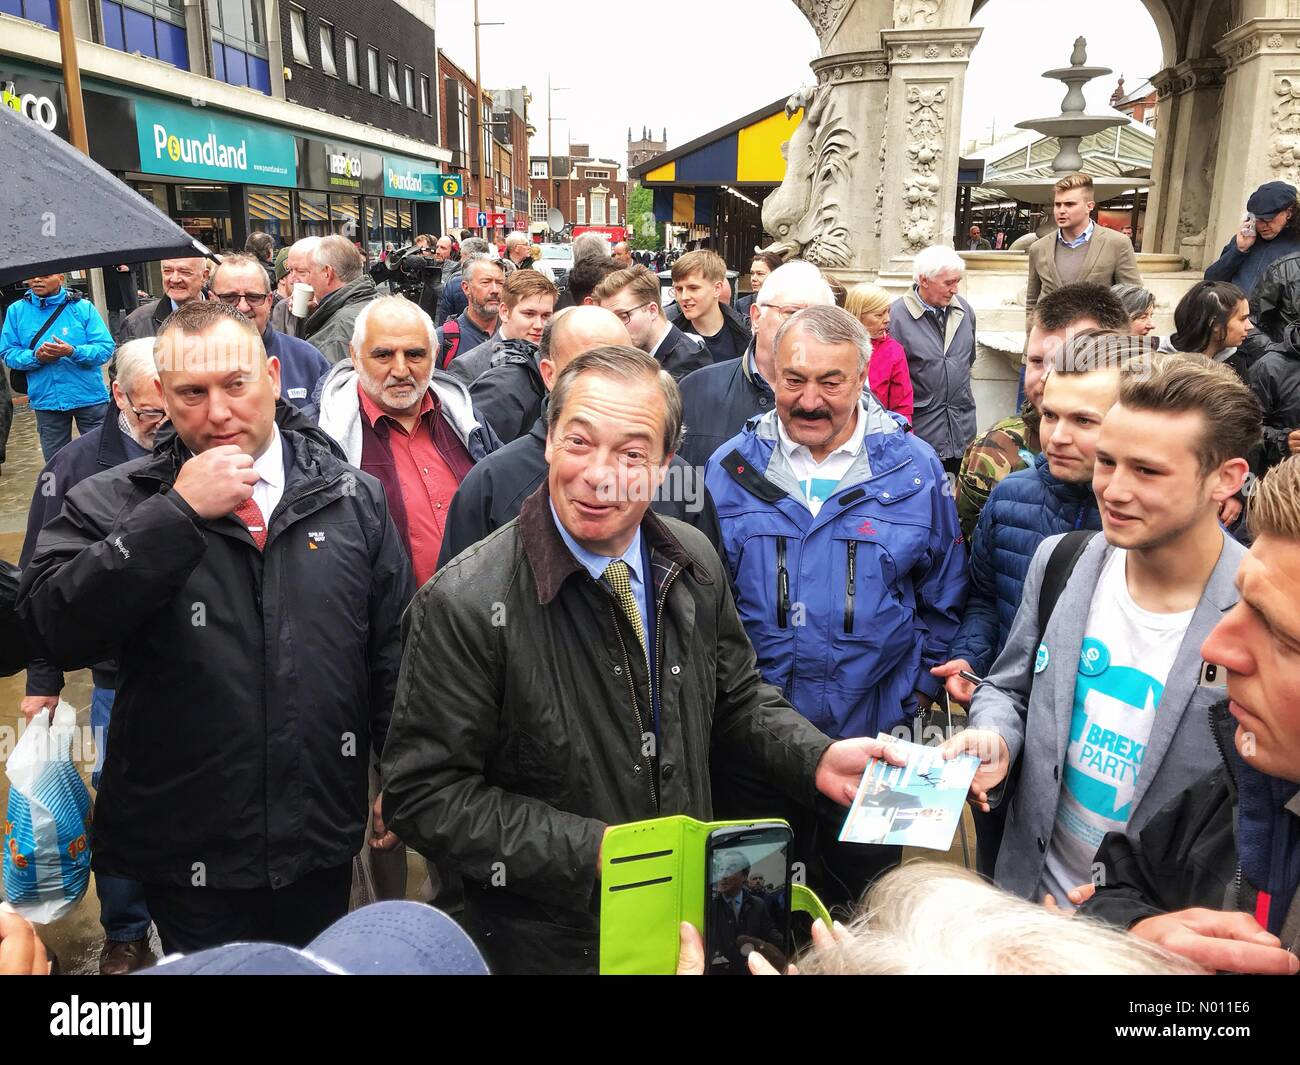 Nigel Farage Brexit Party in Dudley UK - Dudley West Midlands UK Friday 17th May 2019 - Nigel Farage leader of the Brexit Party meets the public in the build up to the European elections. Stock Photo